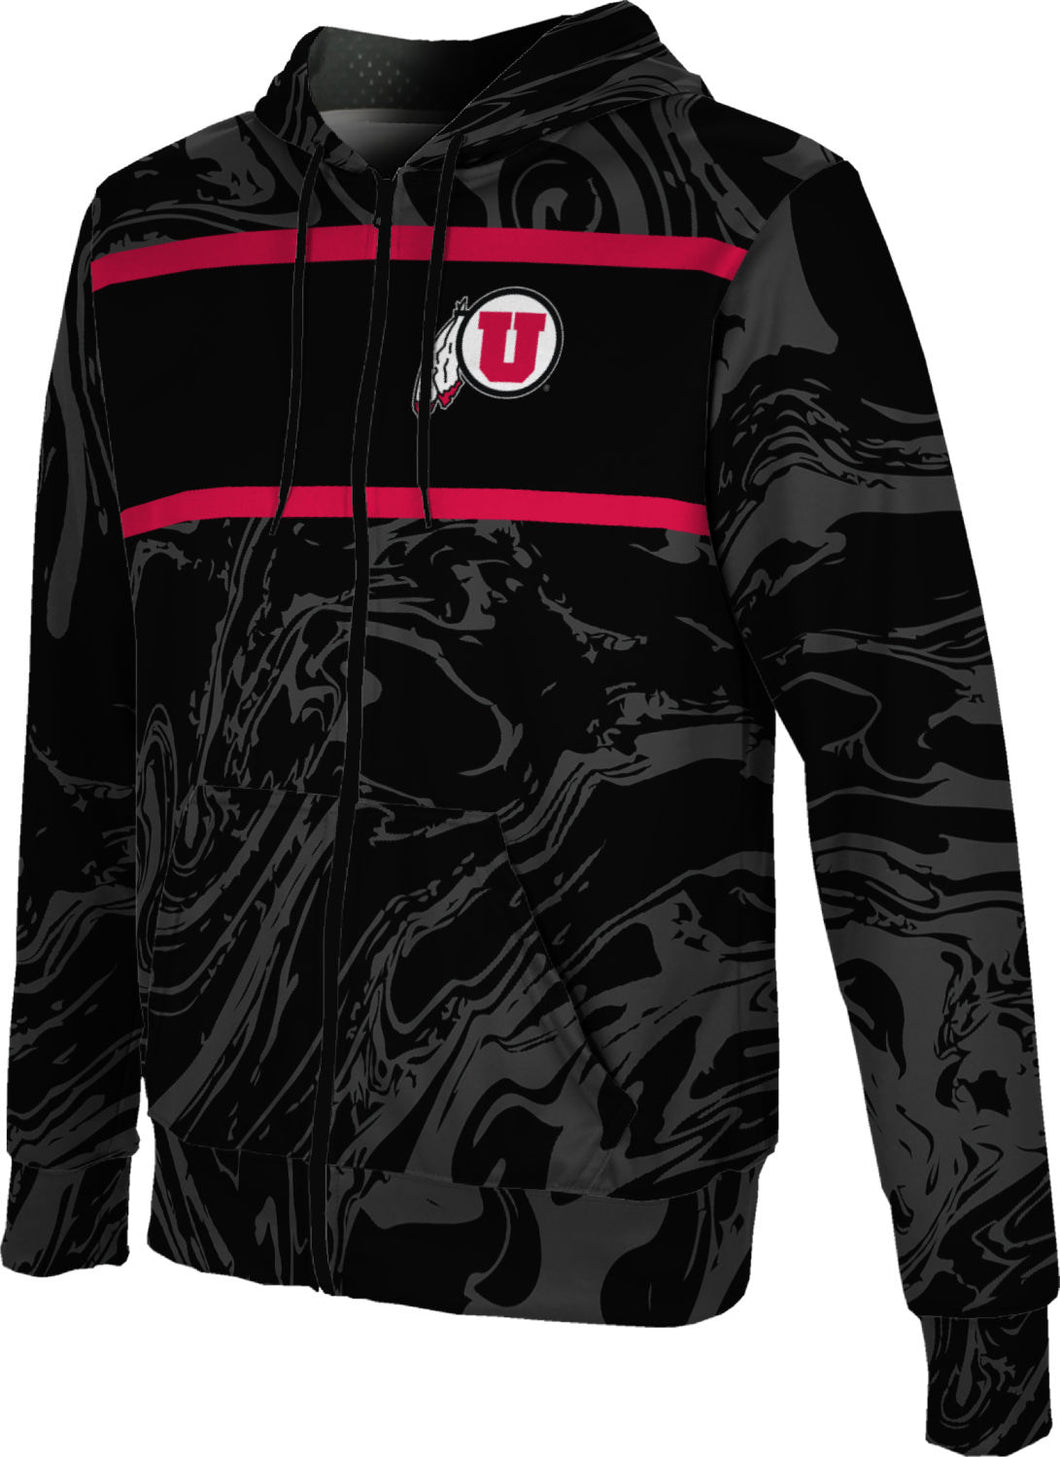 University of Utah: Boys' Full Zip Hoodie - Ripple